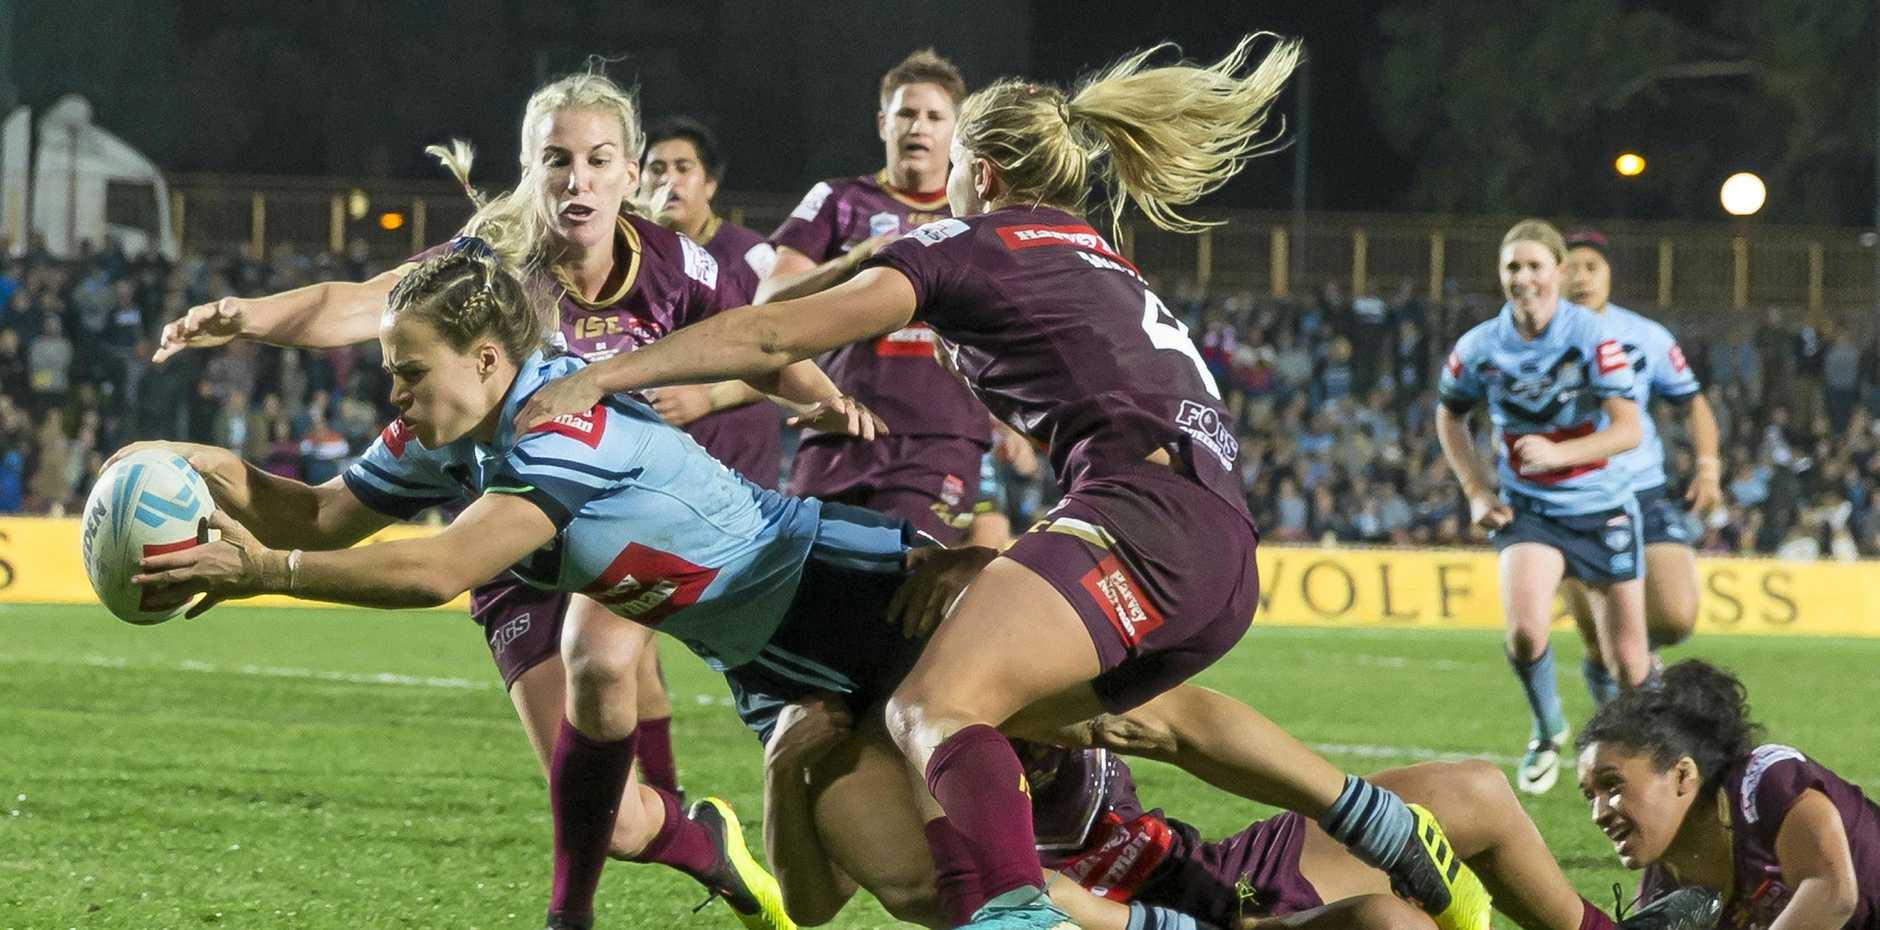 The Women's State of Origin was a cracking match, so Ashley Robinson is wondering why so many people focusing on the sexuality of the players instead.